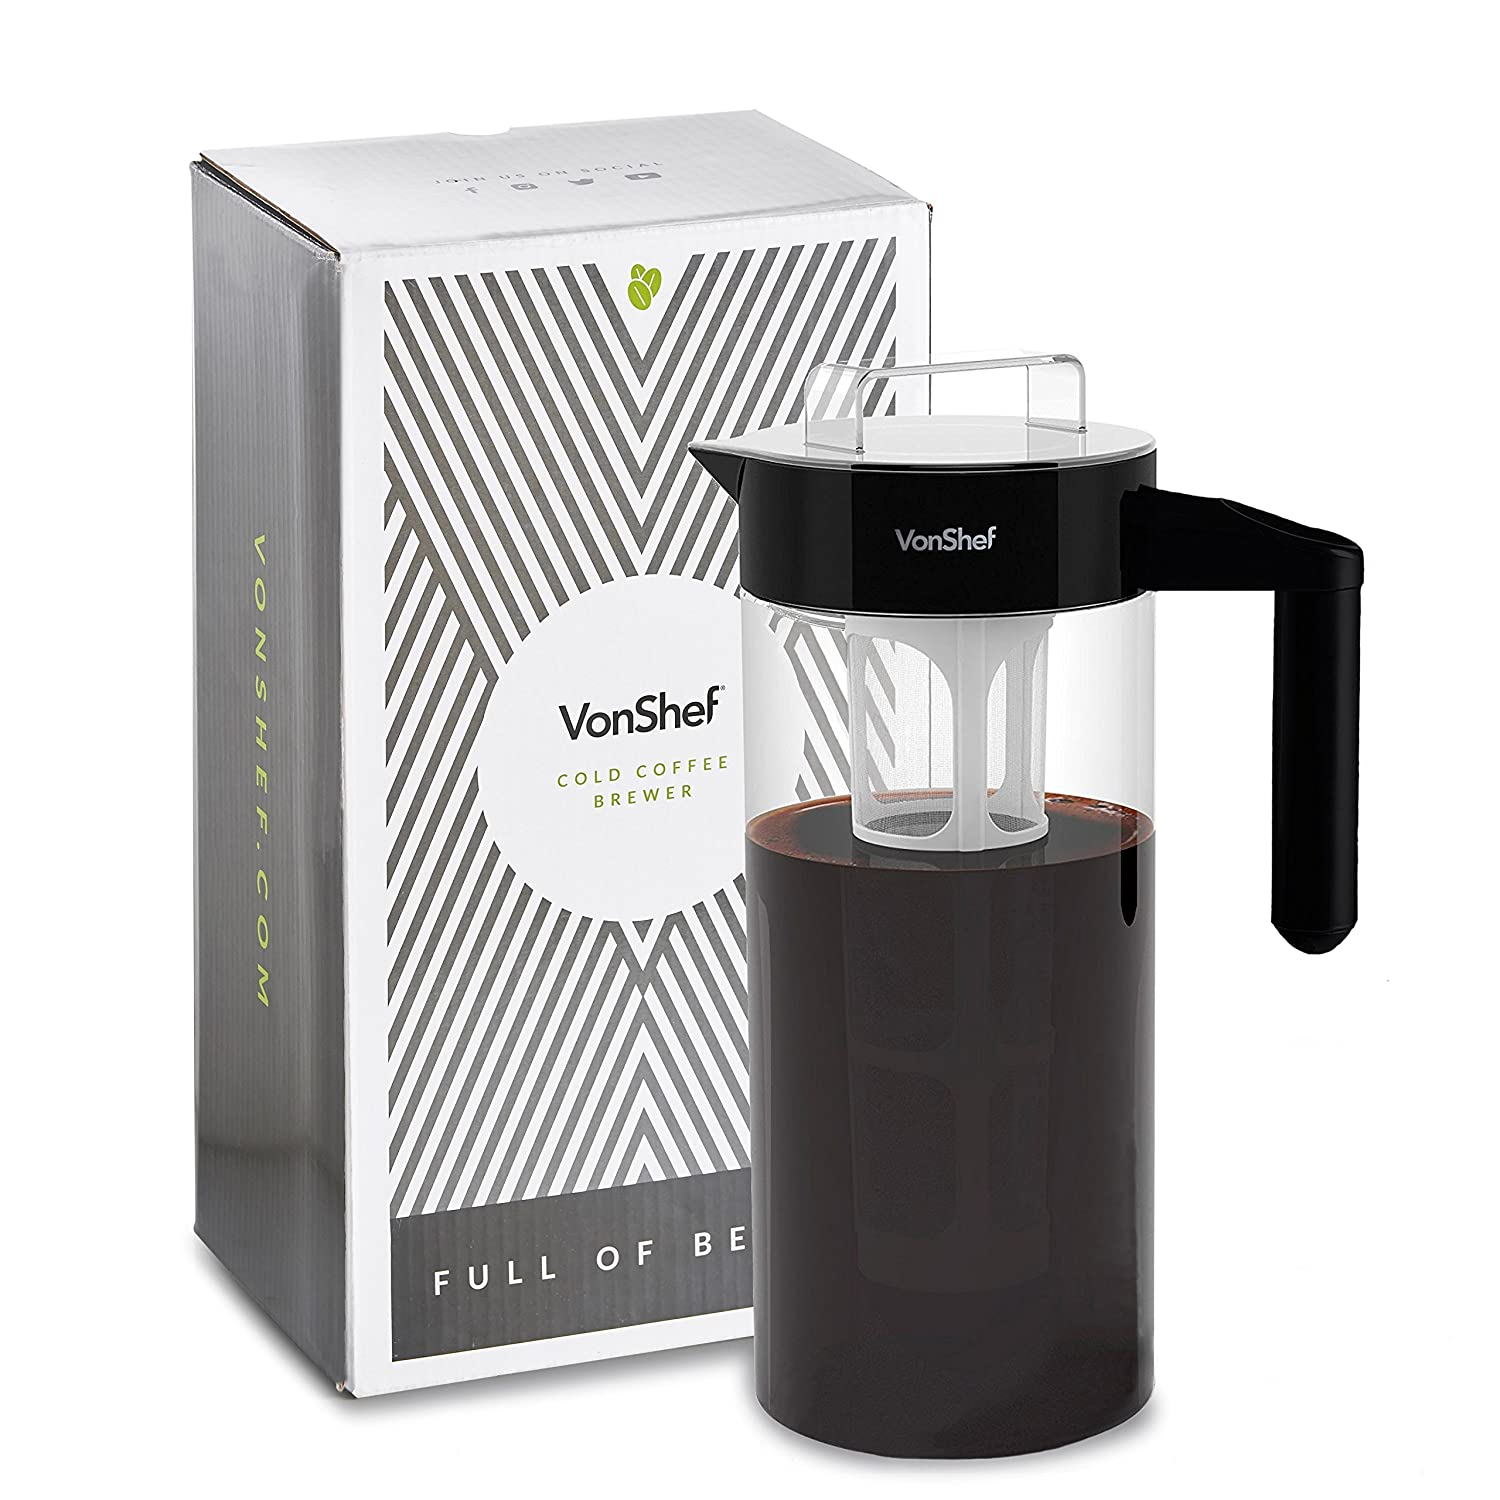 VonShef Cold Coffee Brewer 1300ML With Filter – Iced Coffee/Jug/Bottle